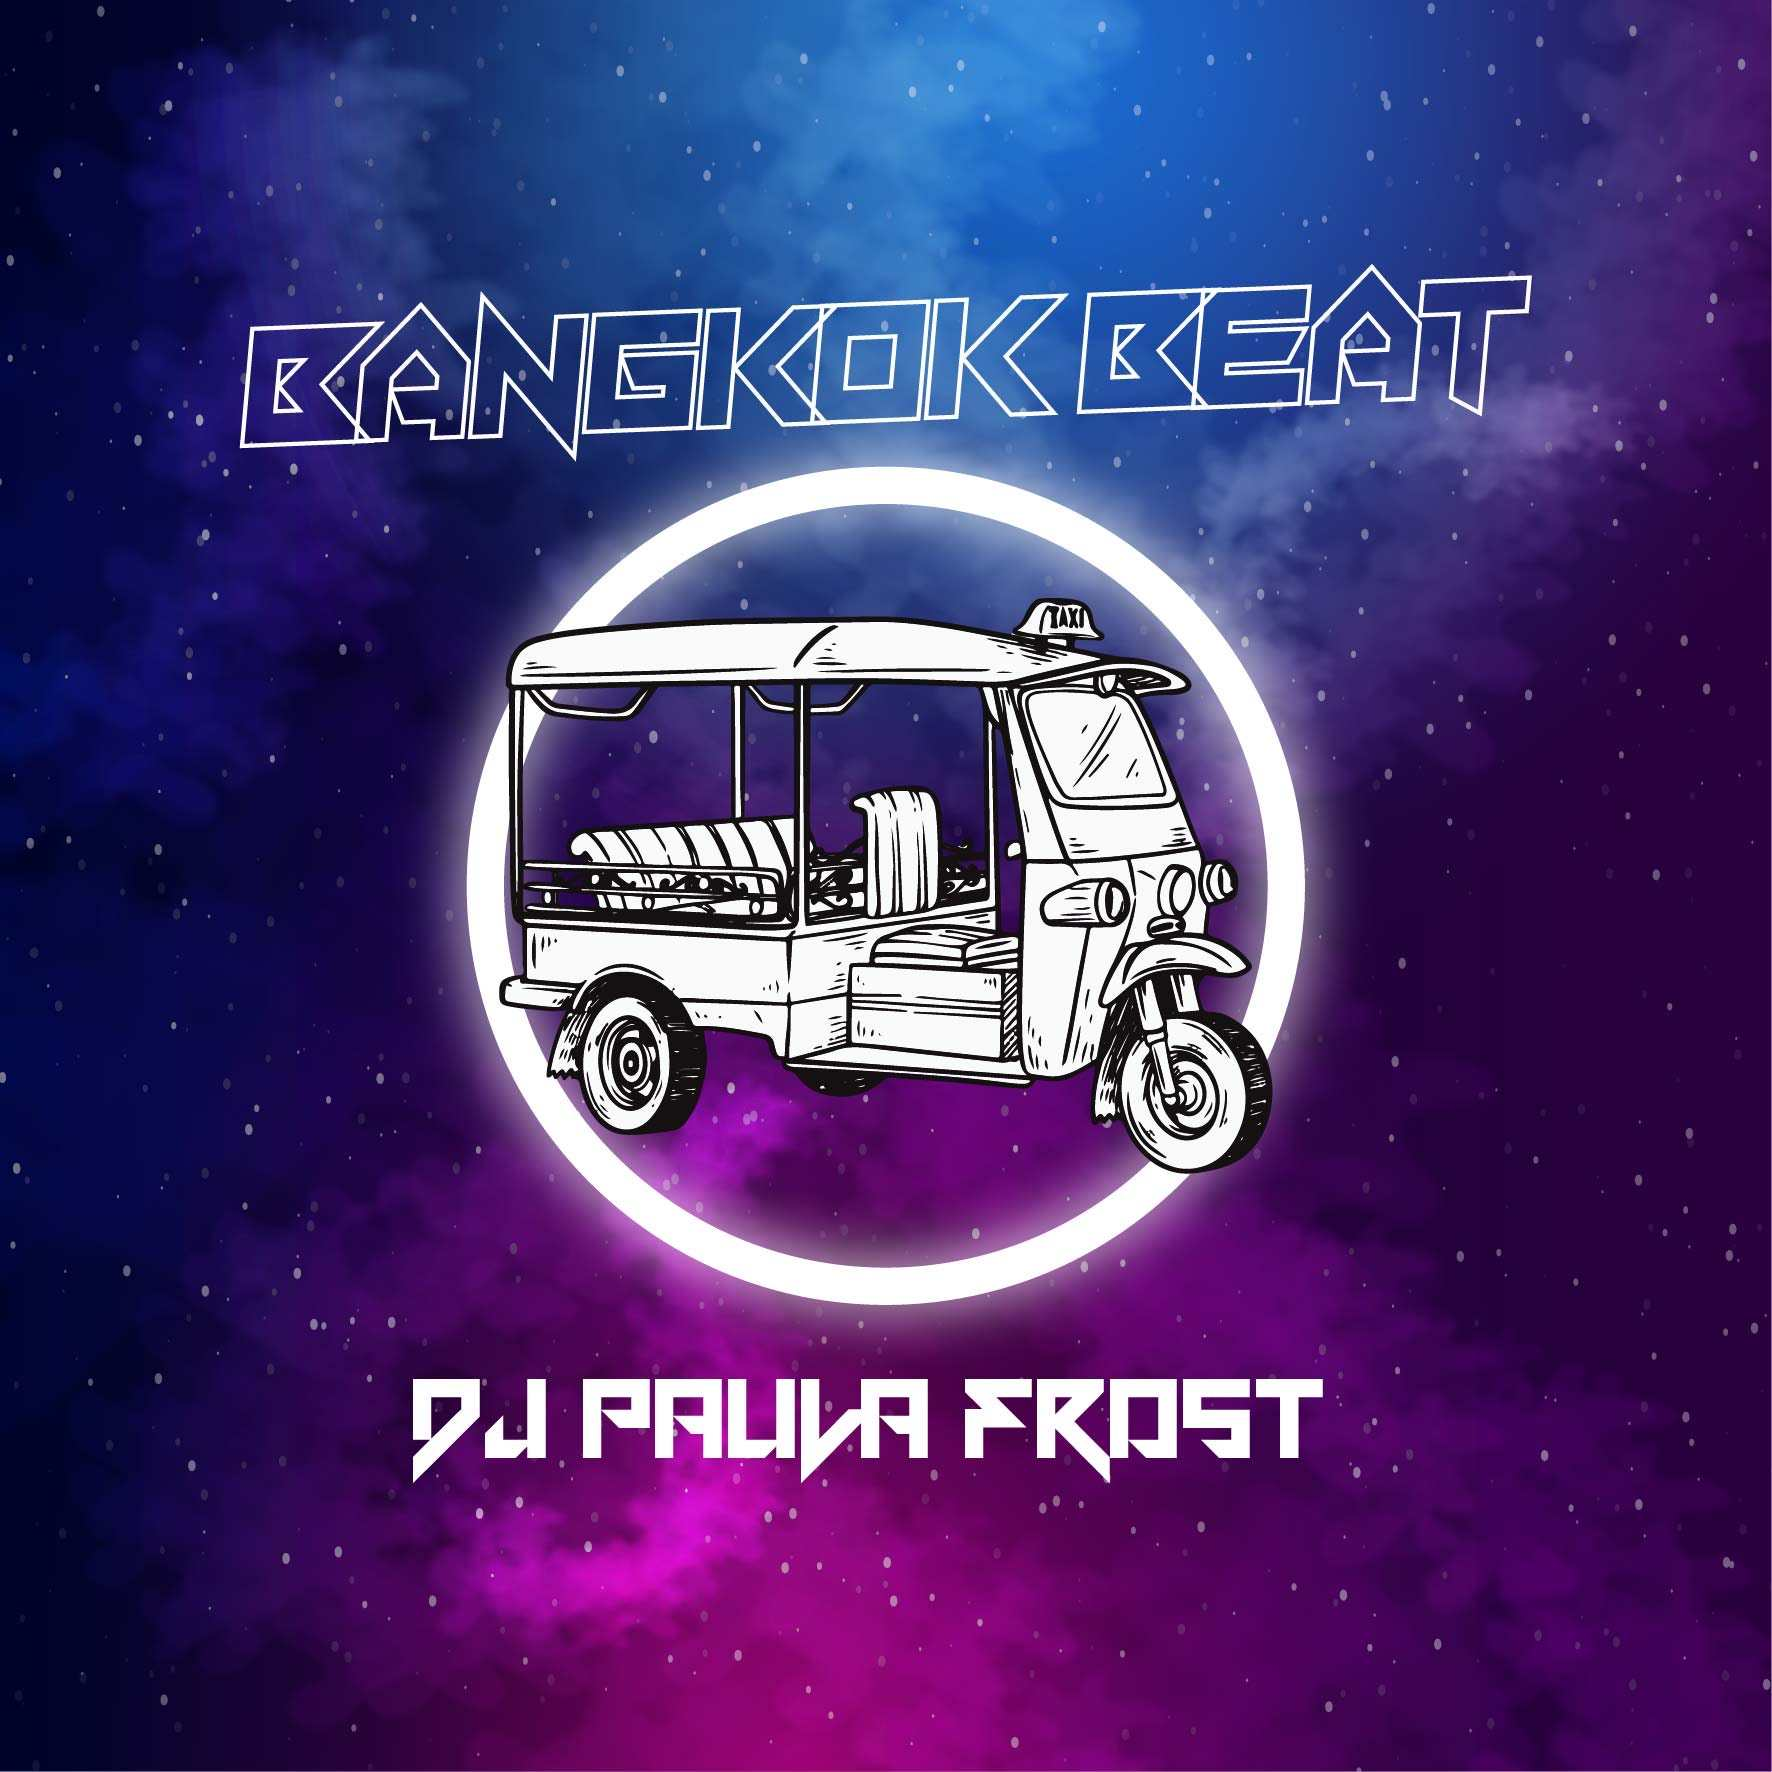 DJ PAULA FROST – BANGKOK BEAT (SINGLE DOWNLOAD)